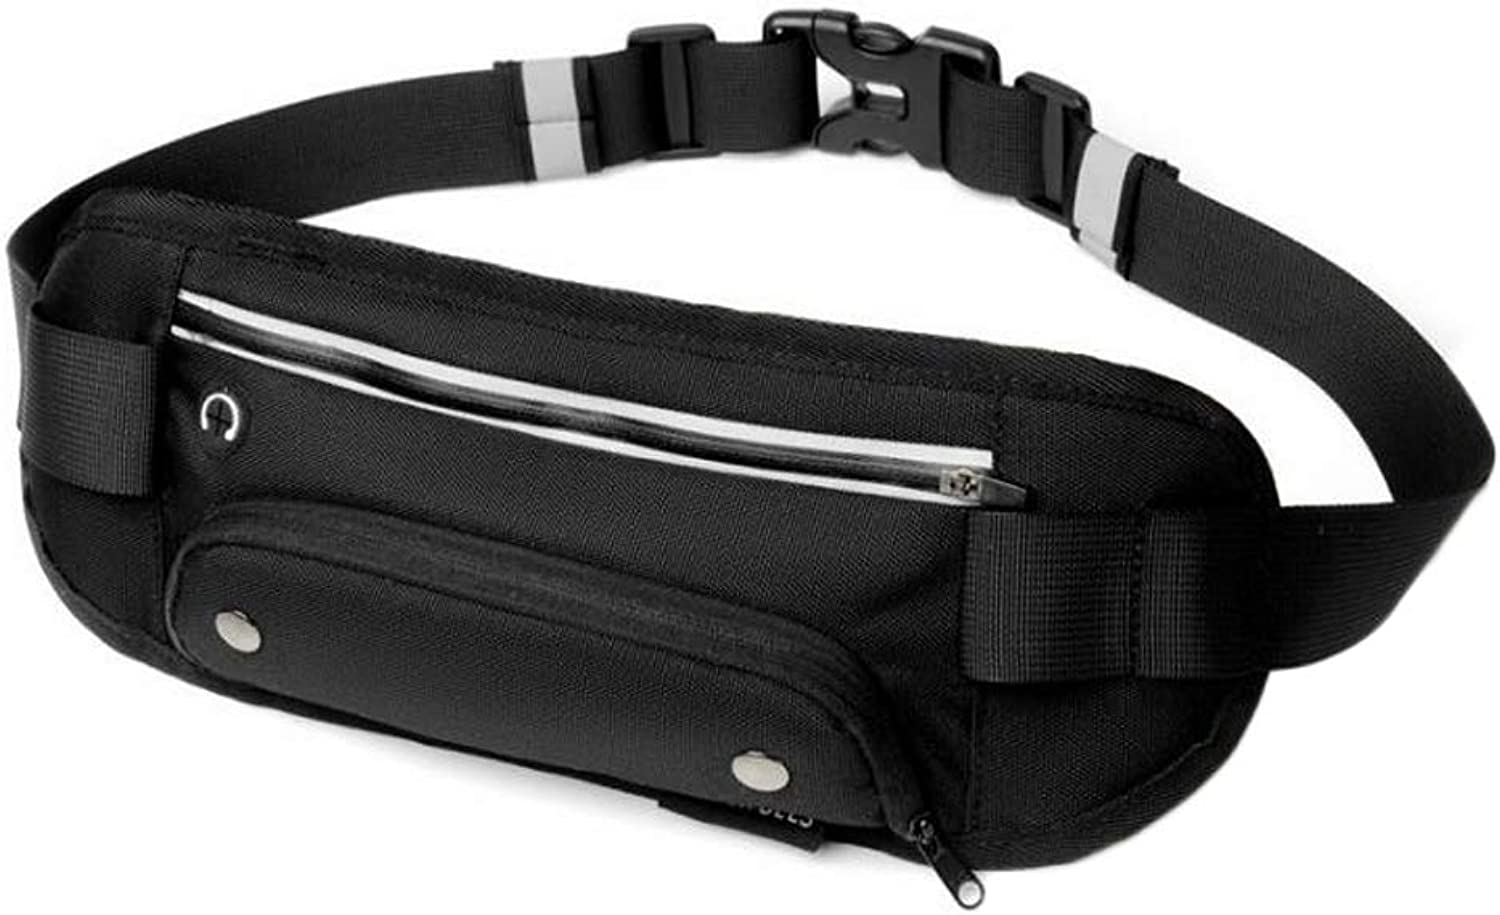 Fanny Pack Waist Pack with Bottle Holder Waterproof Running Waist Belt for Men and Women Multiple Pockets Sturdy Zippers Ideal for Hiking Running Cycling